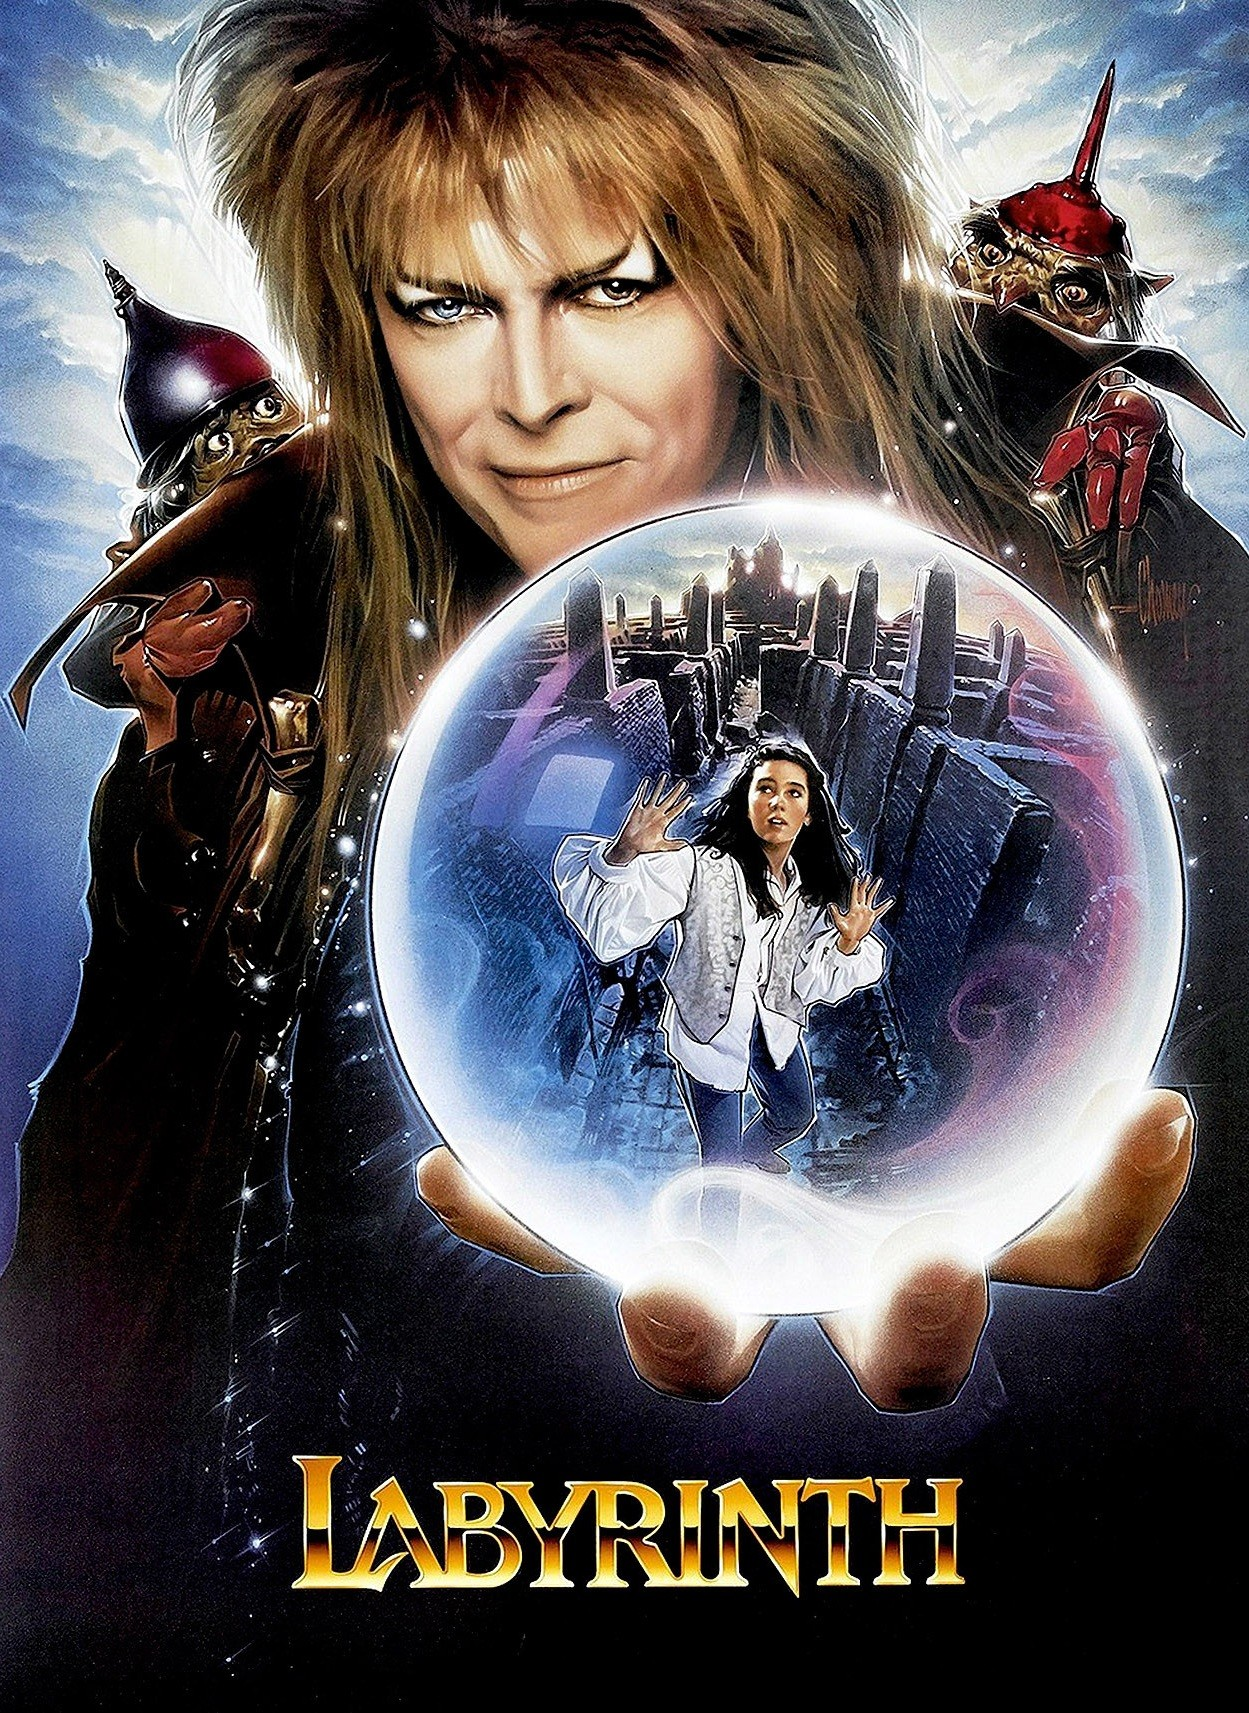 Critica Dentro del laberinto (Labyrinth, 1986) - Zinéfilos ... Labyrinth 1986